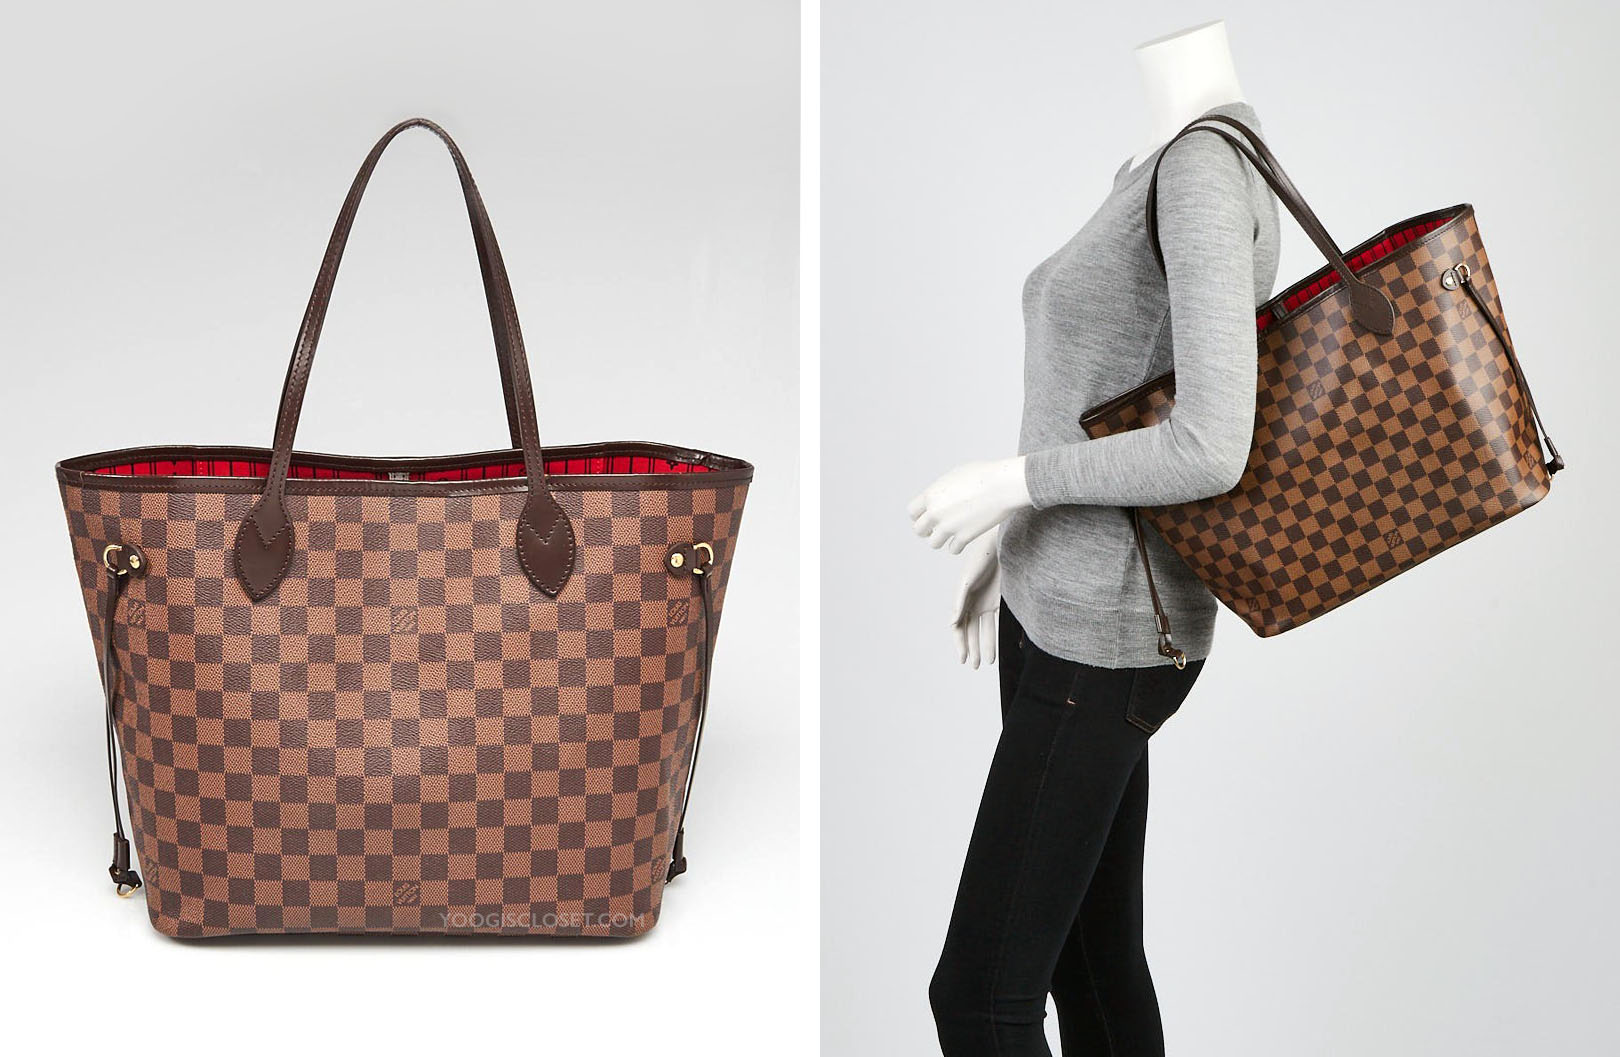 14271c02bf0 Louis Vuitton Neverfull Buying Guide - Yoogi s Closet Blog